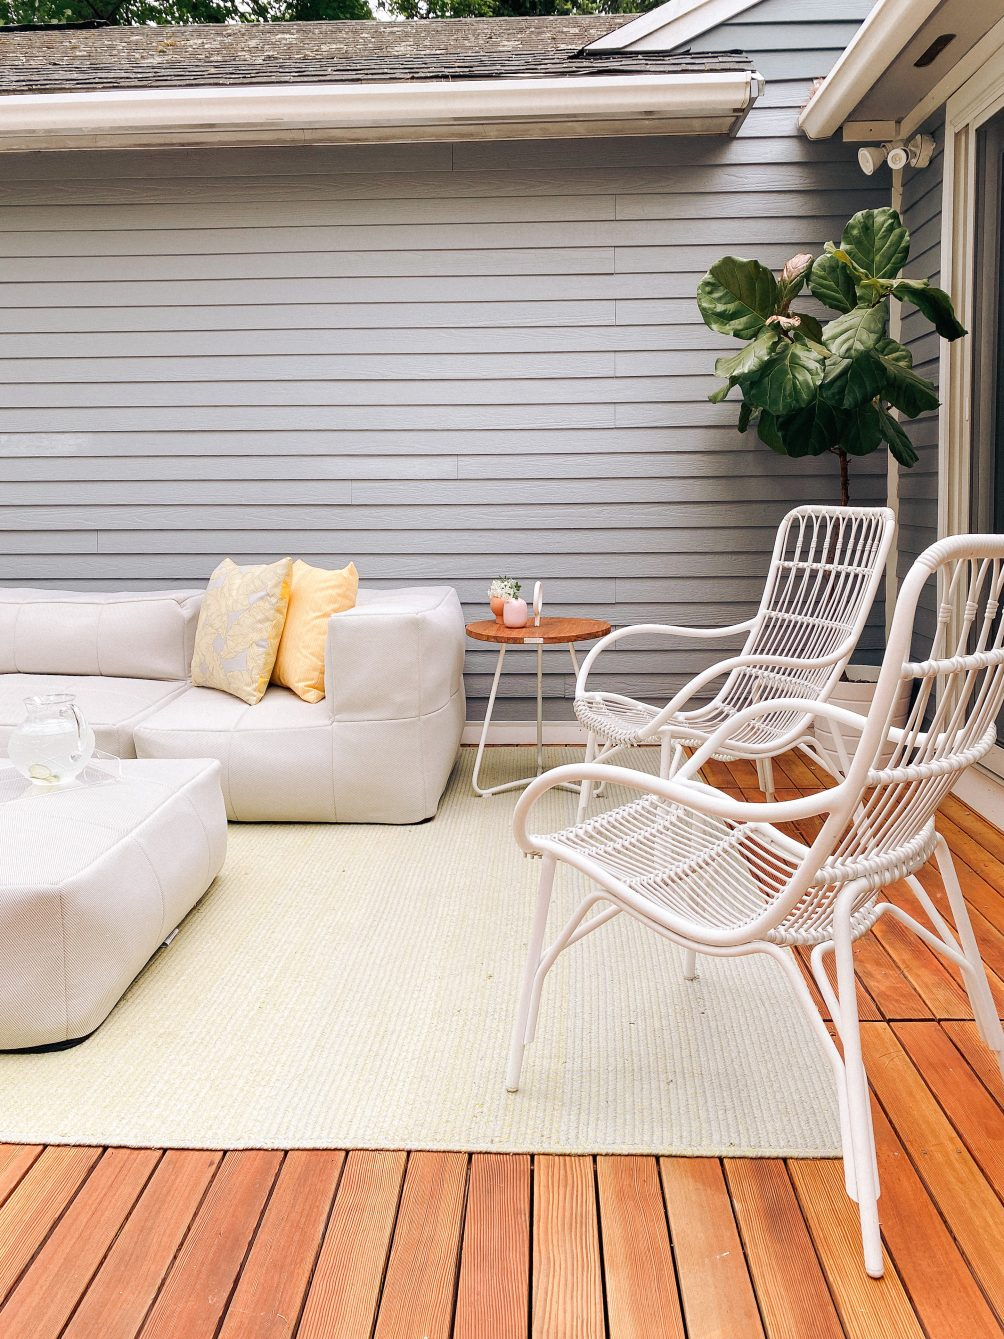 backyard deck design with Article furniture for summer in quarantine